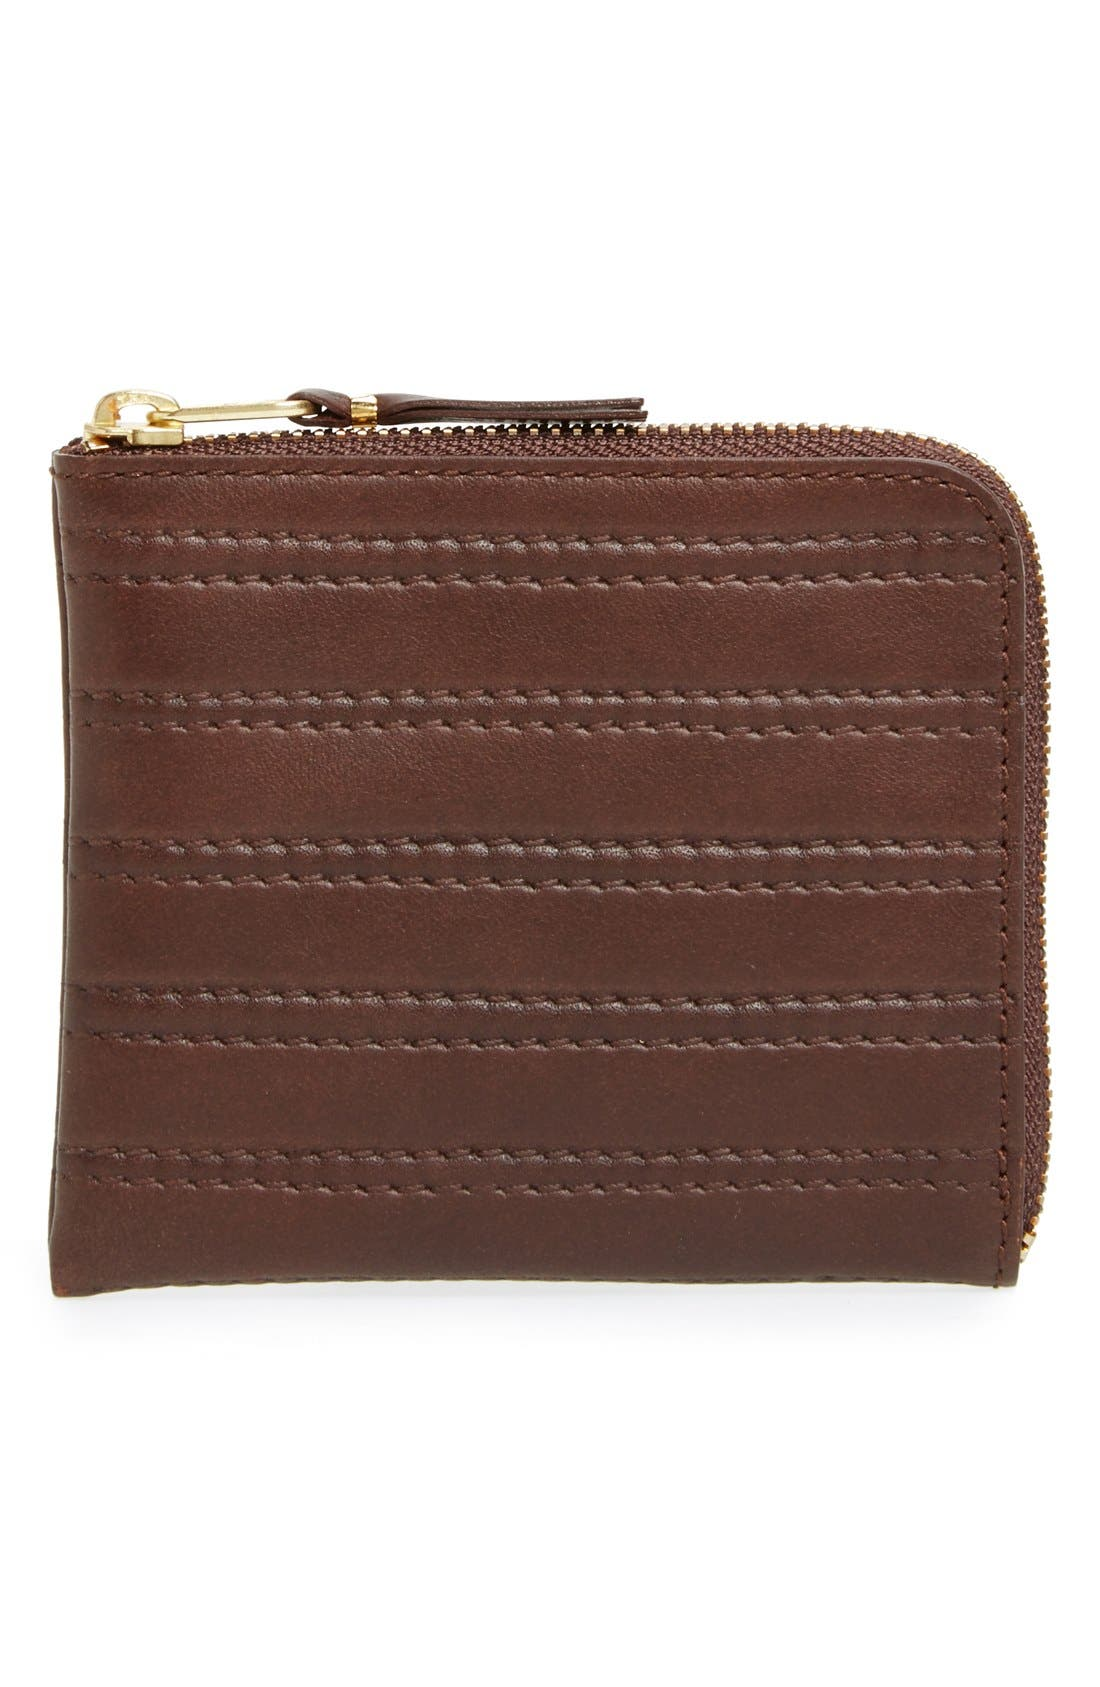 Comme des Garçons 'Embossed Stitch' Leather Half Zip French Wallet